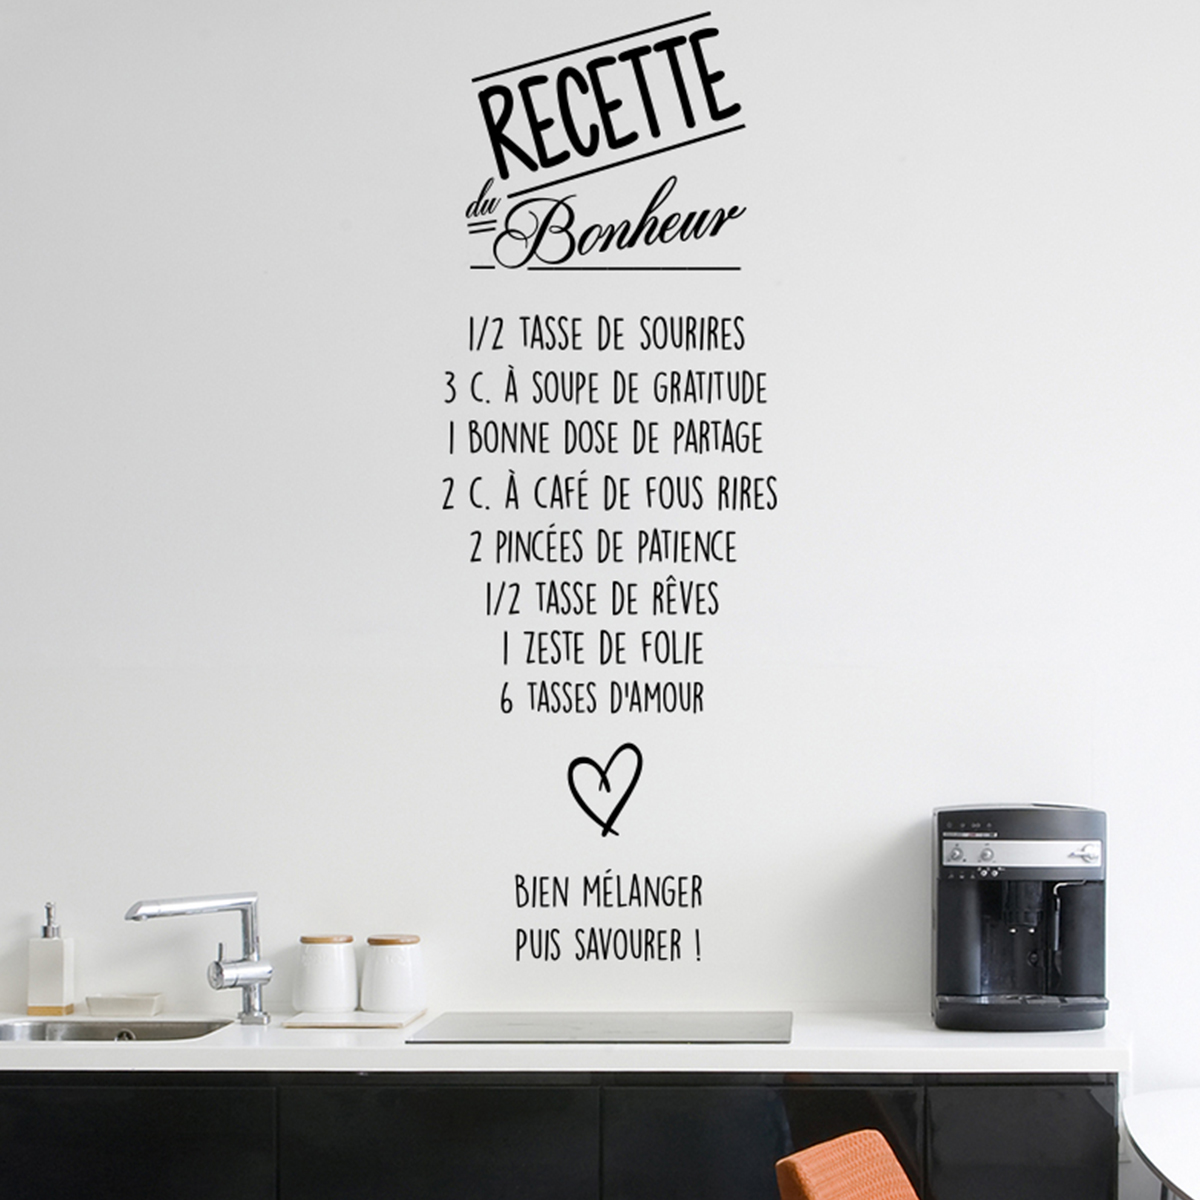 Sticker citation recette du bonheur stickers citations for Les francais et la cuisine